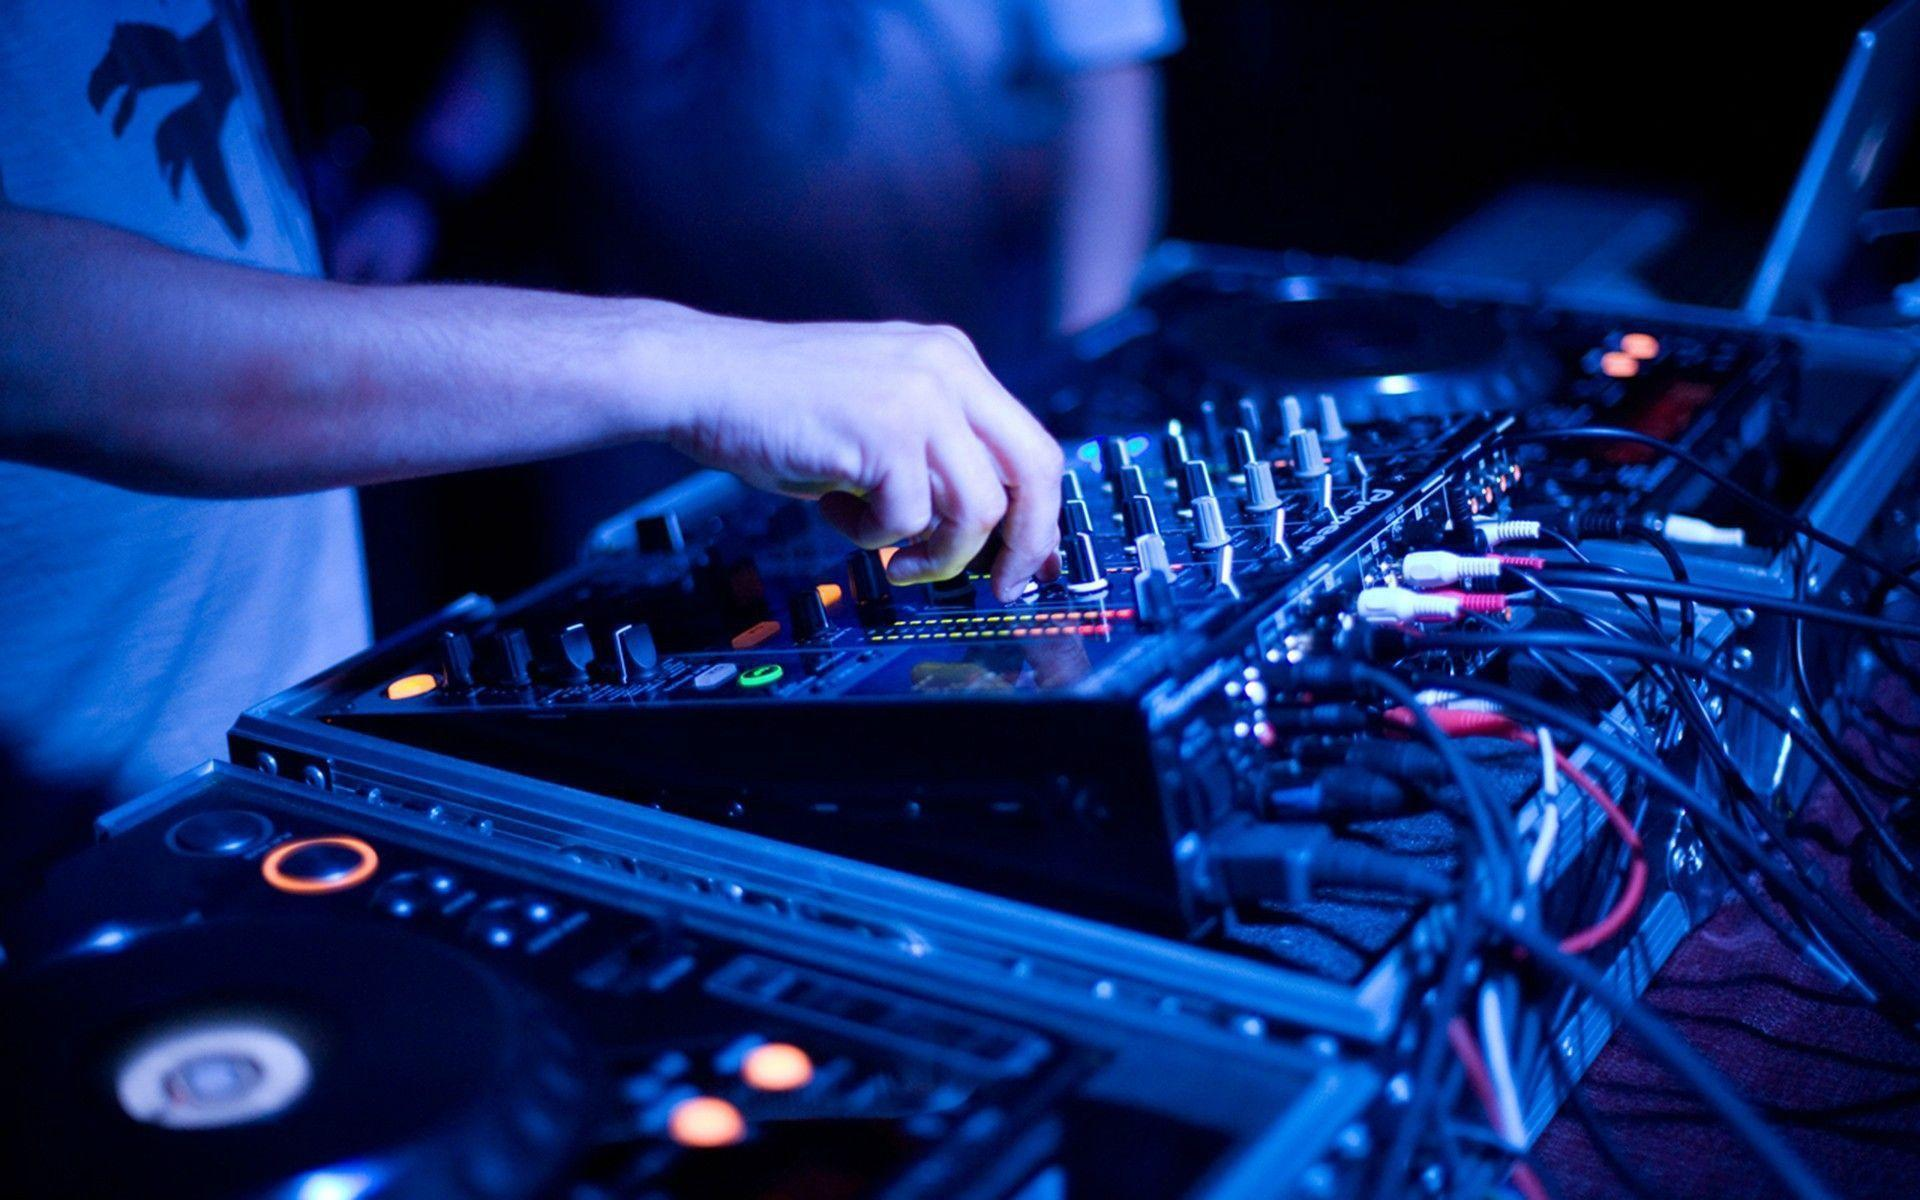 DJ equipment for mixing music